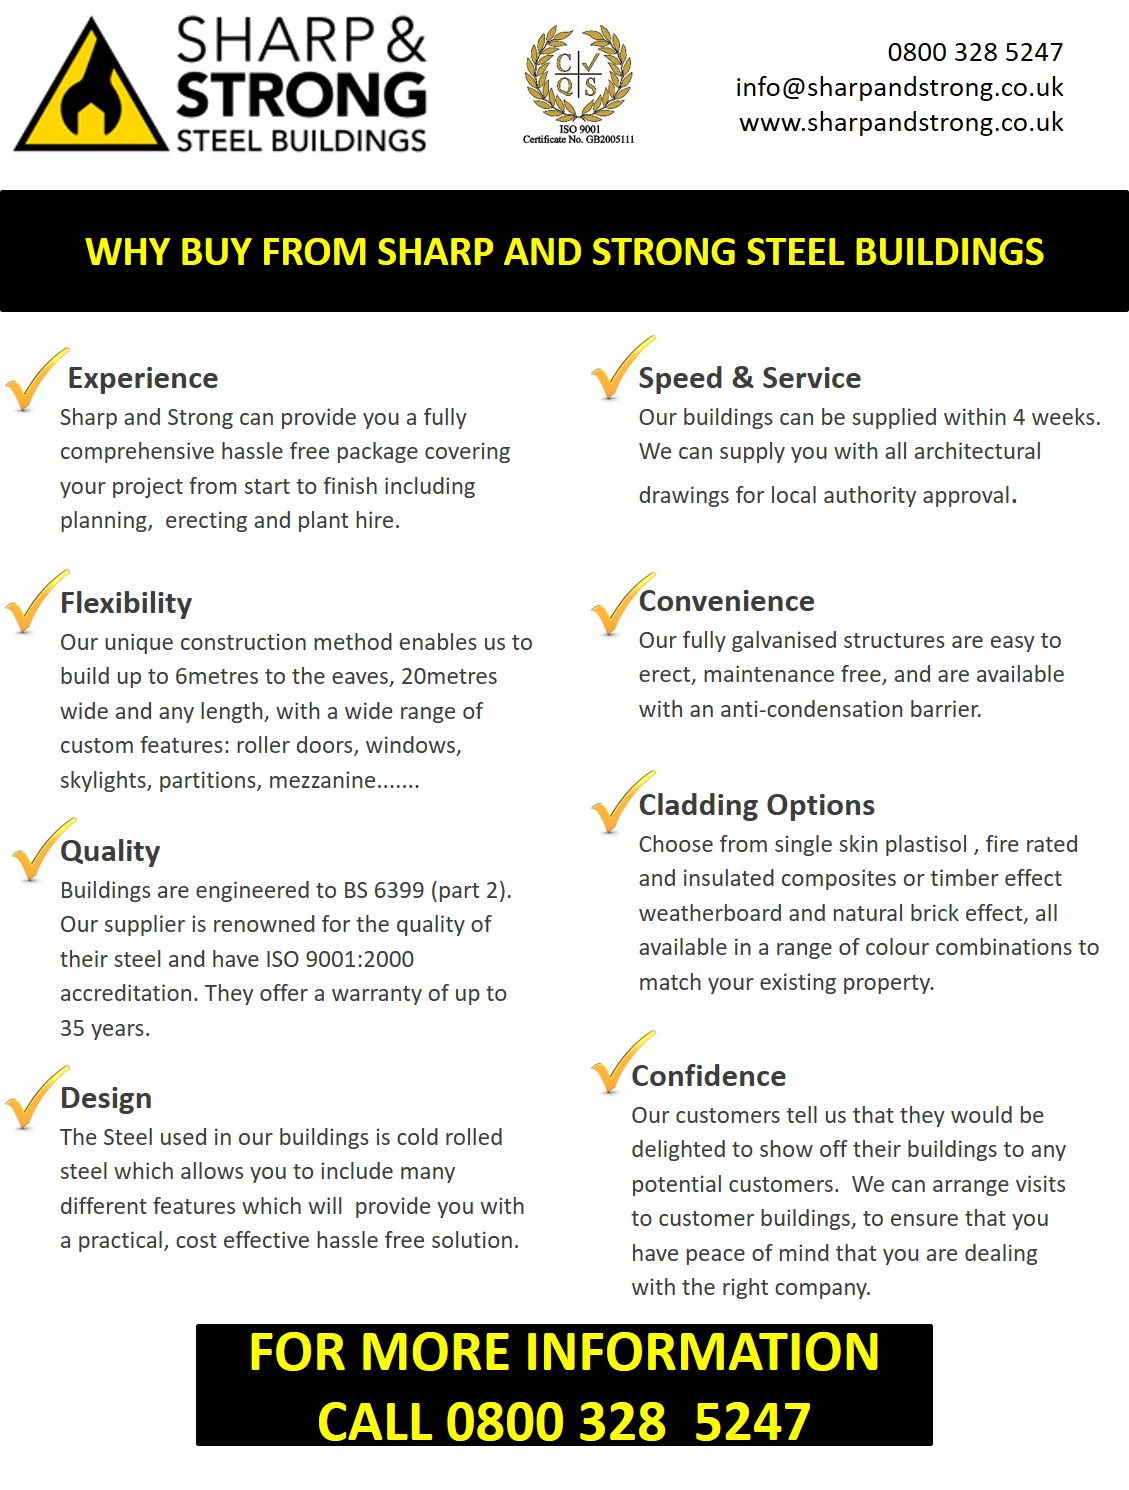 WHY CHOOSE SHARP AND STRONG LTD - 2017